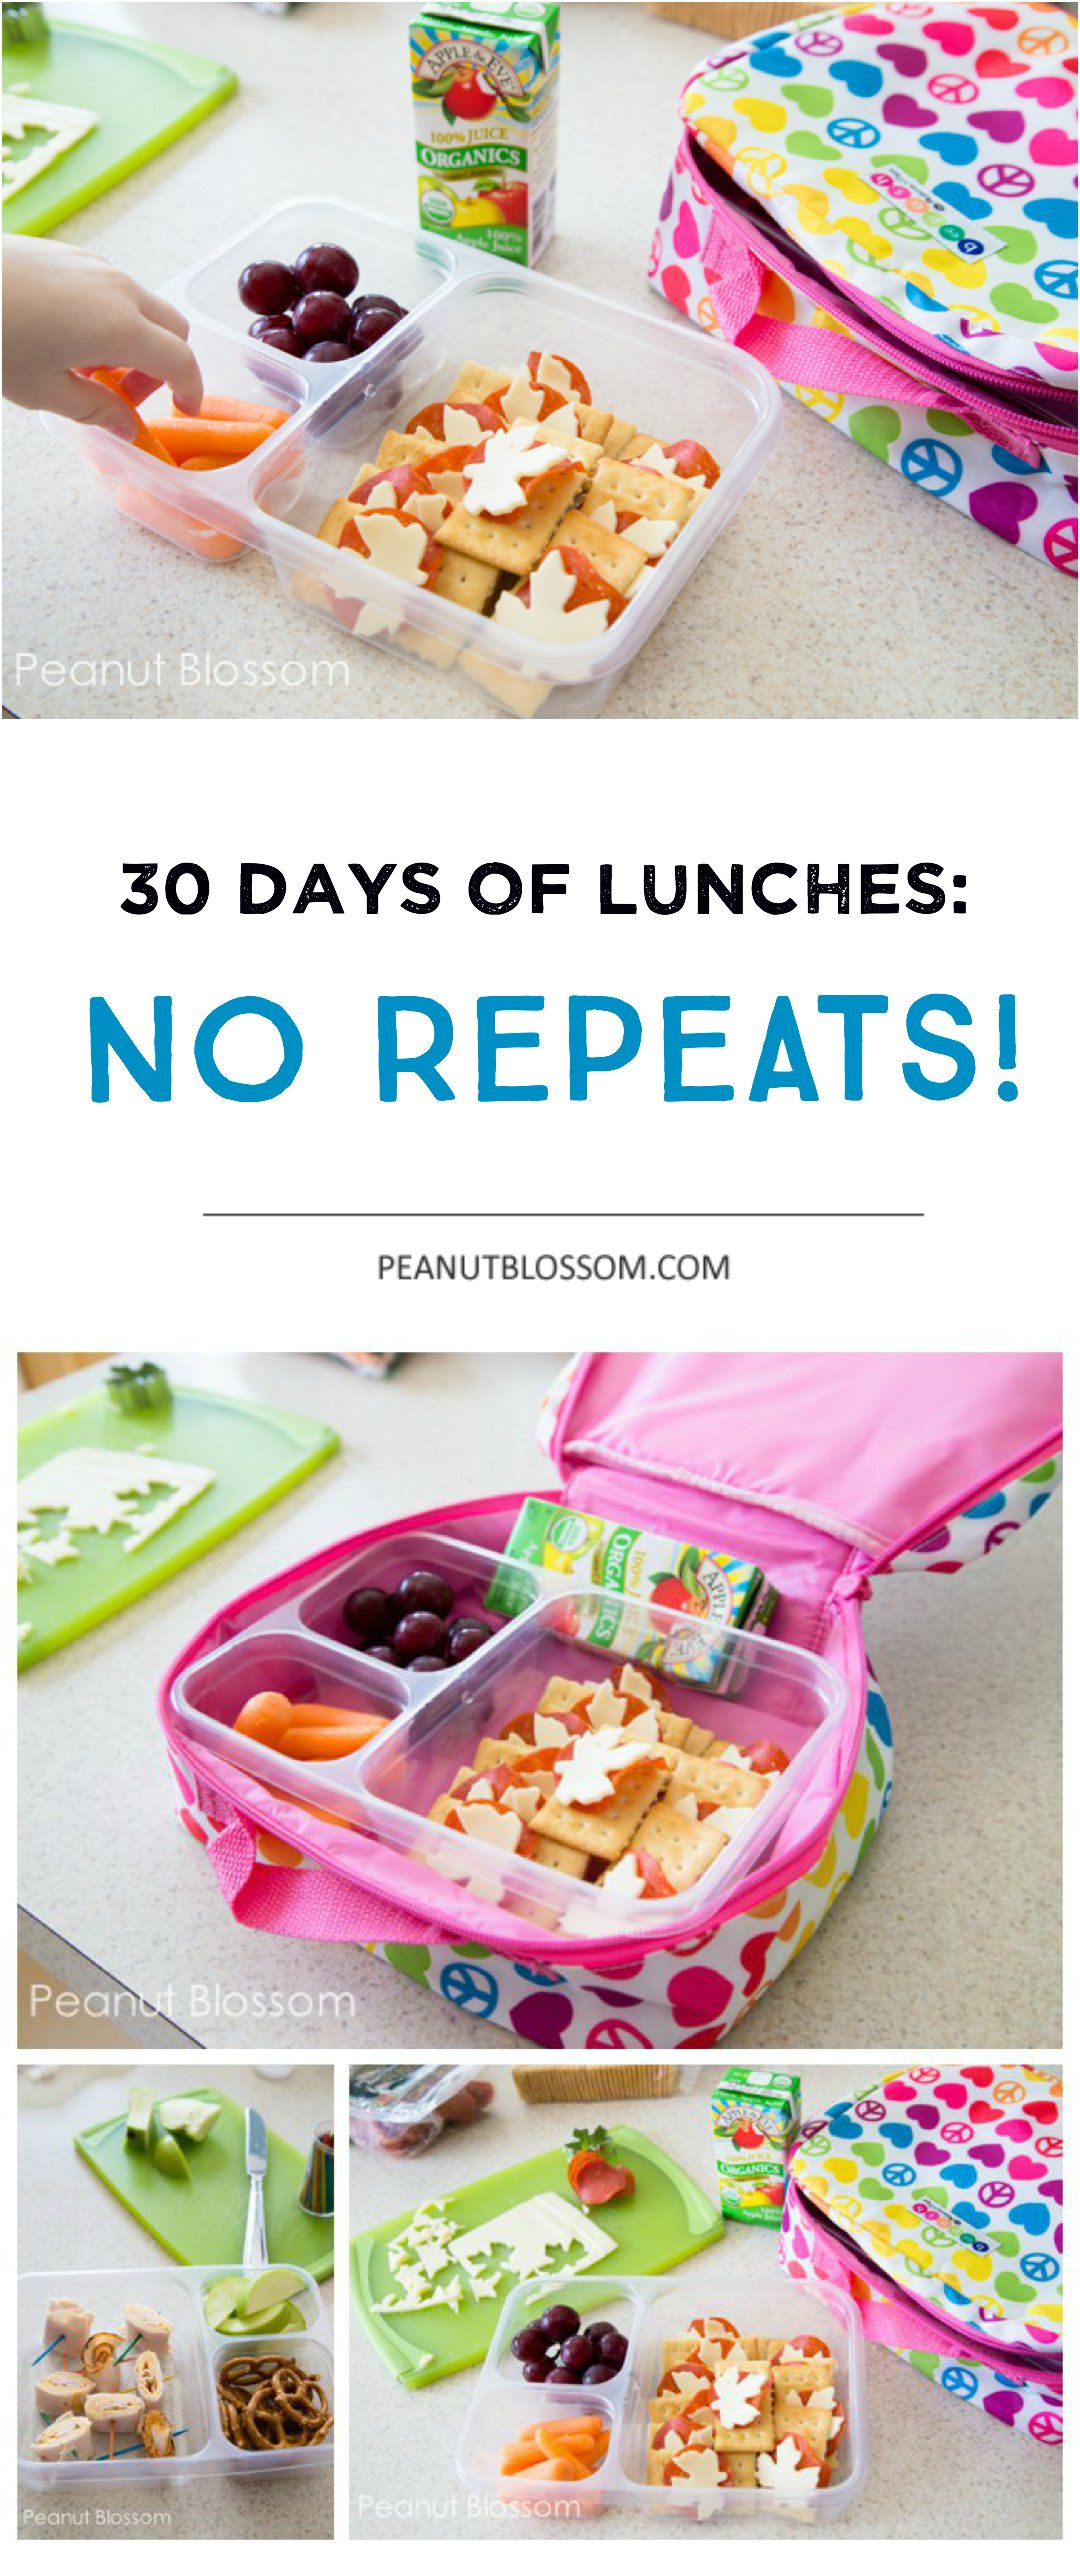 30 days of lunchbox recipes: no repeats! | foods kids love